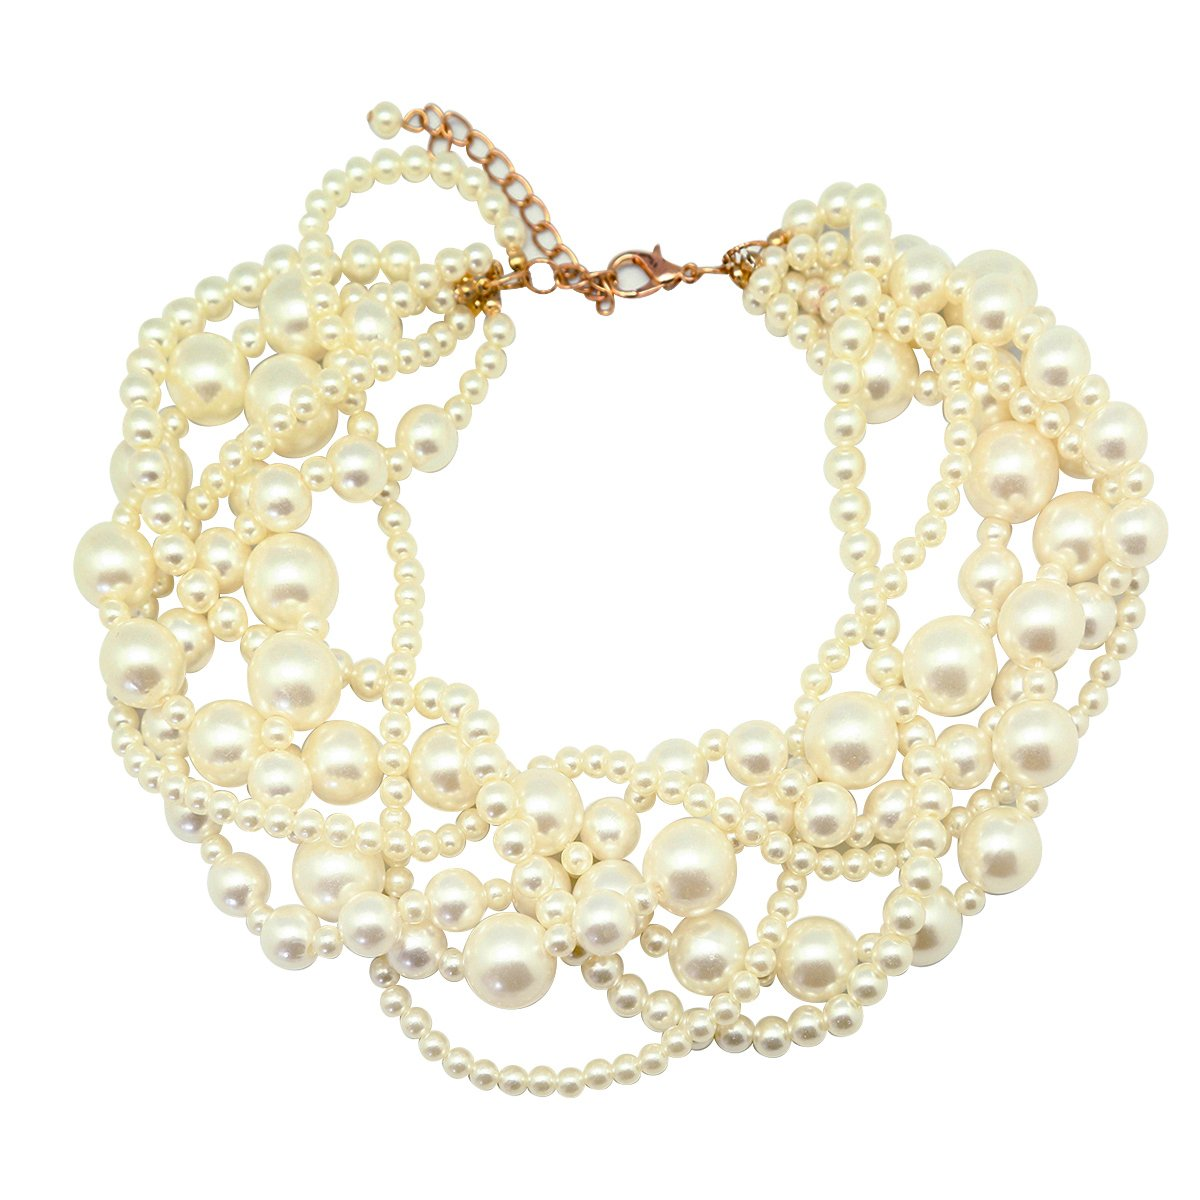 We We Fashion Jewelry Pendant Faux Pearl Choker Chunky Statement Bib Necklace (White)